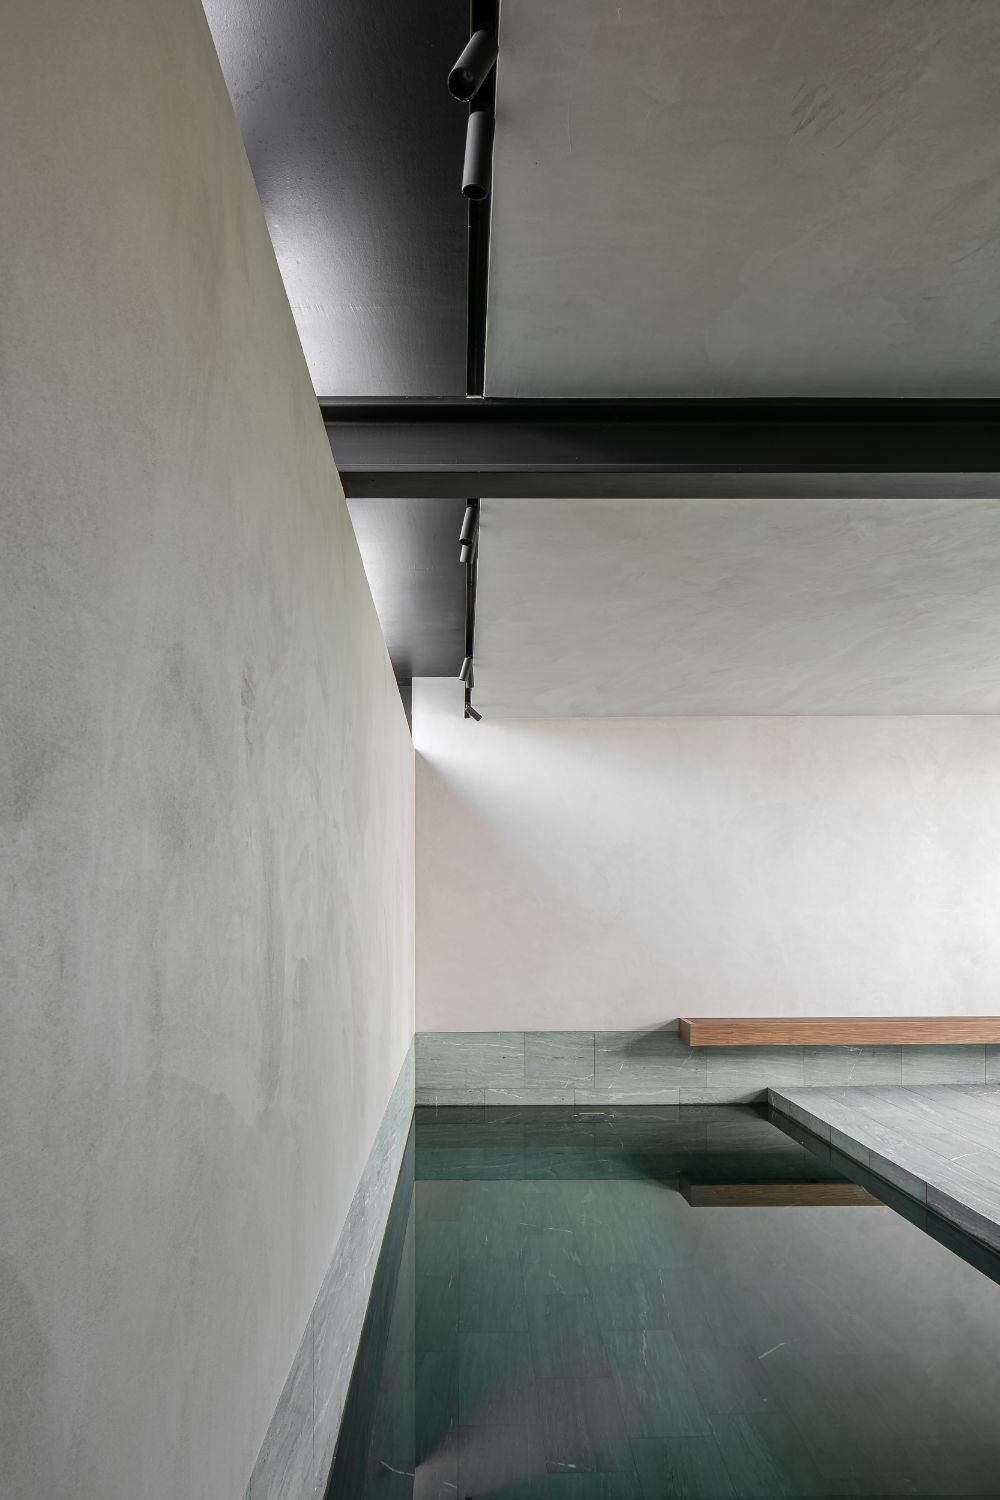 Rietveldprojects - House MP - Indoor swimminpool - Pic by Cafeïne 8.jpg